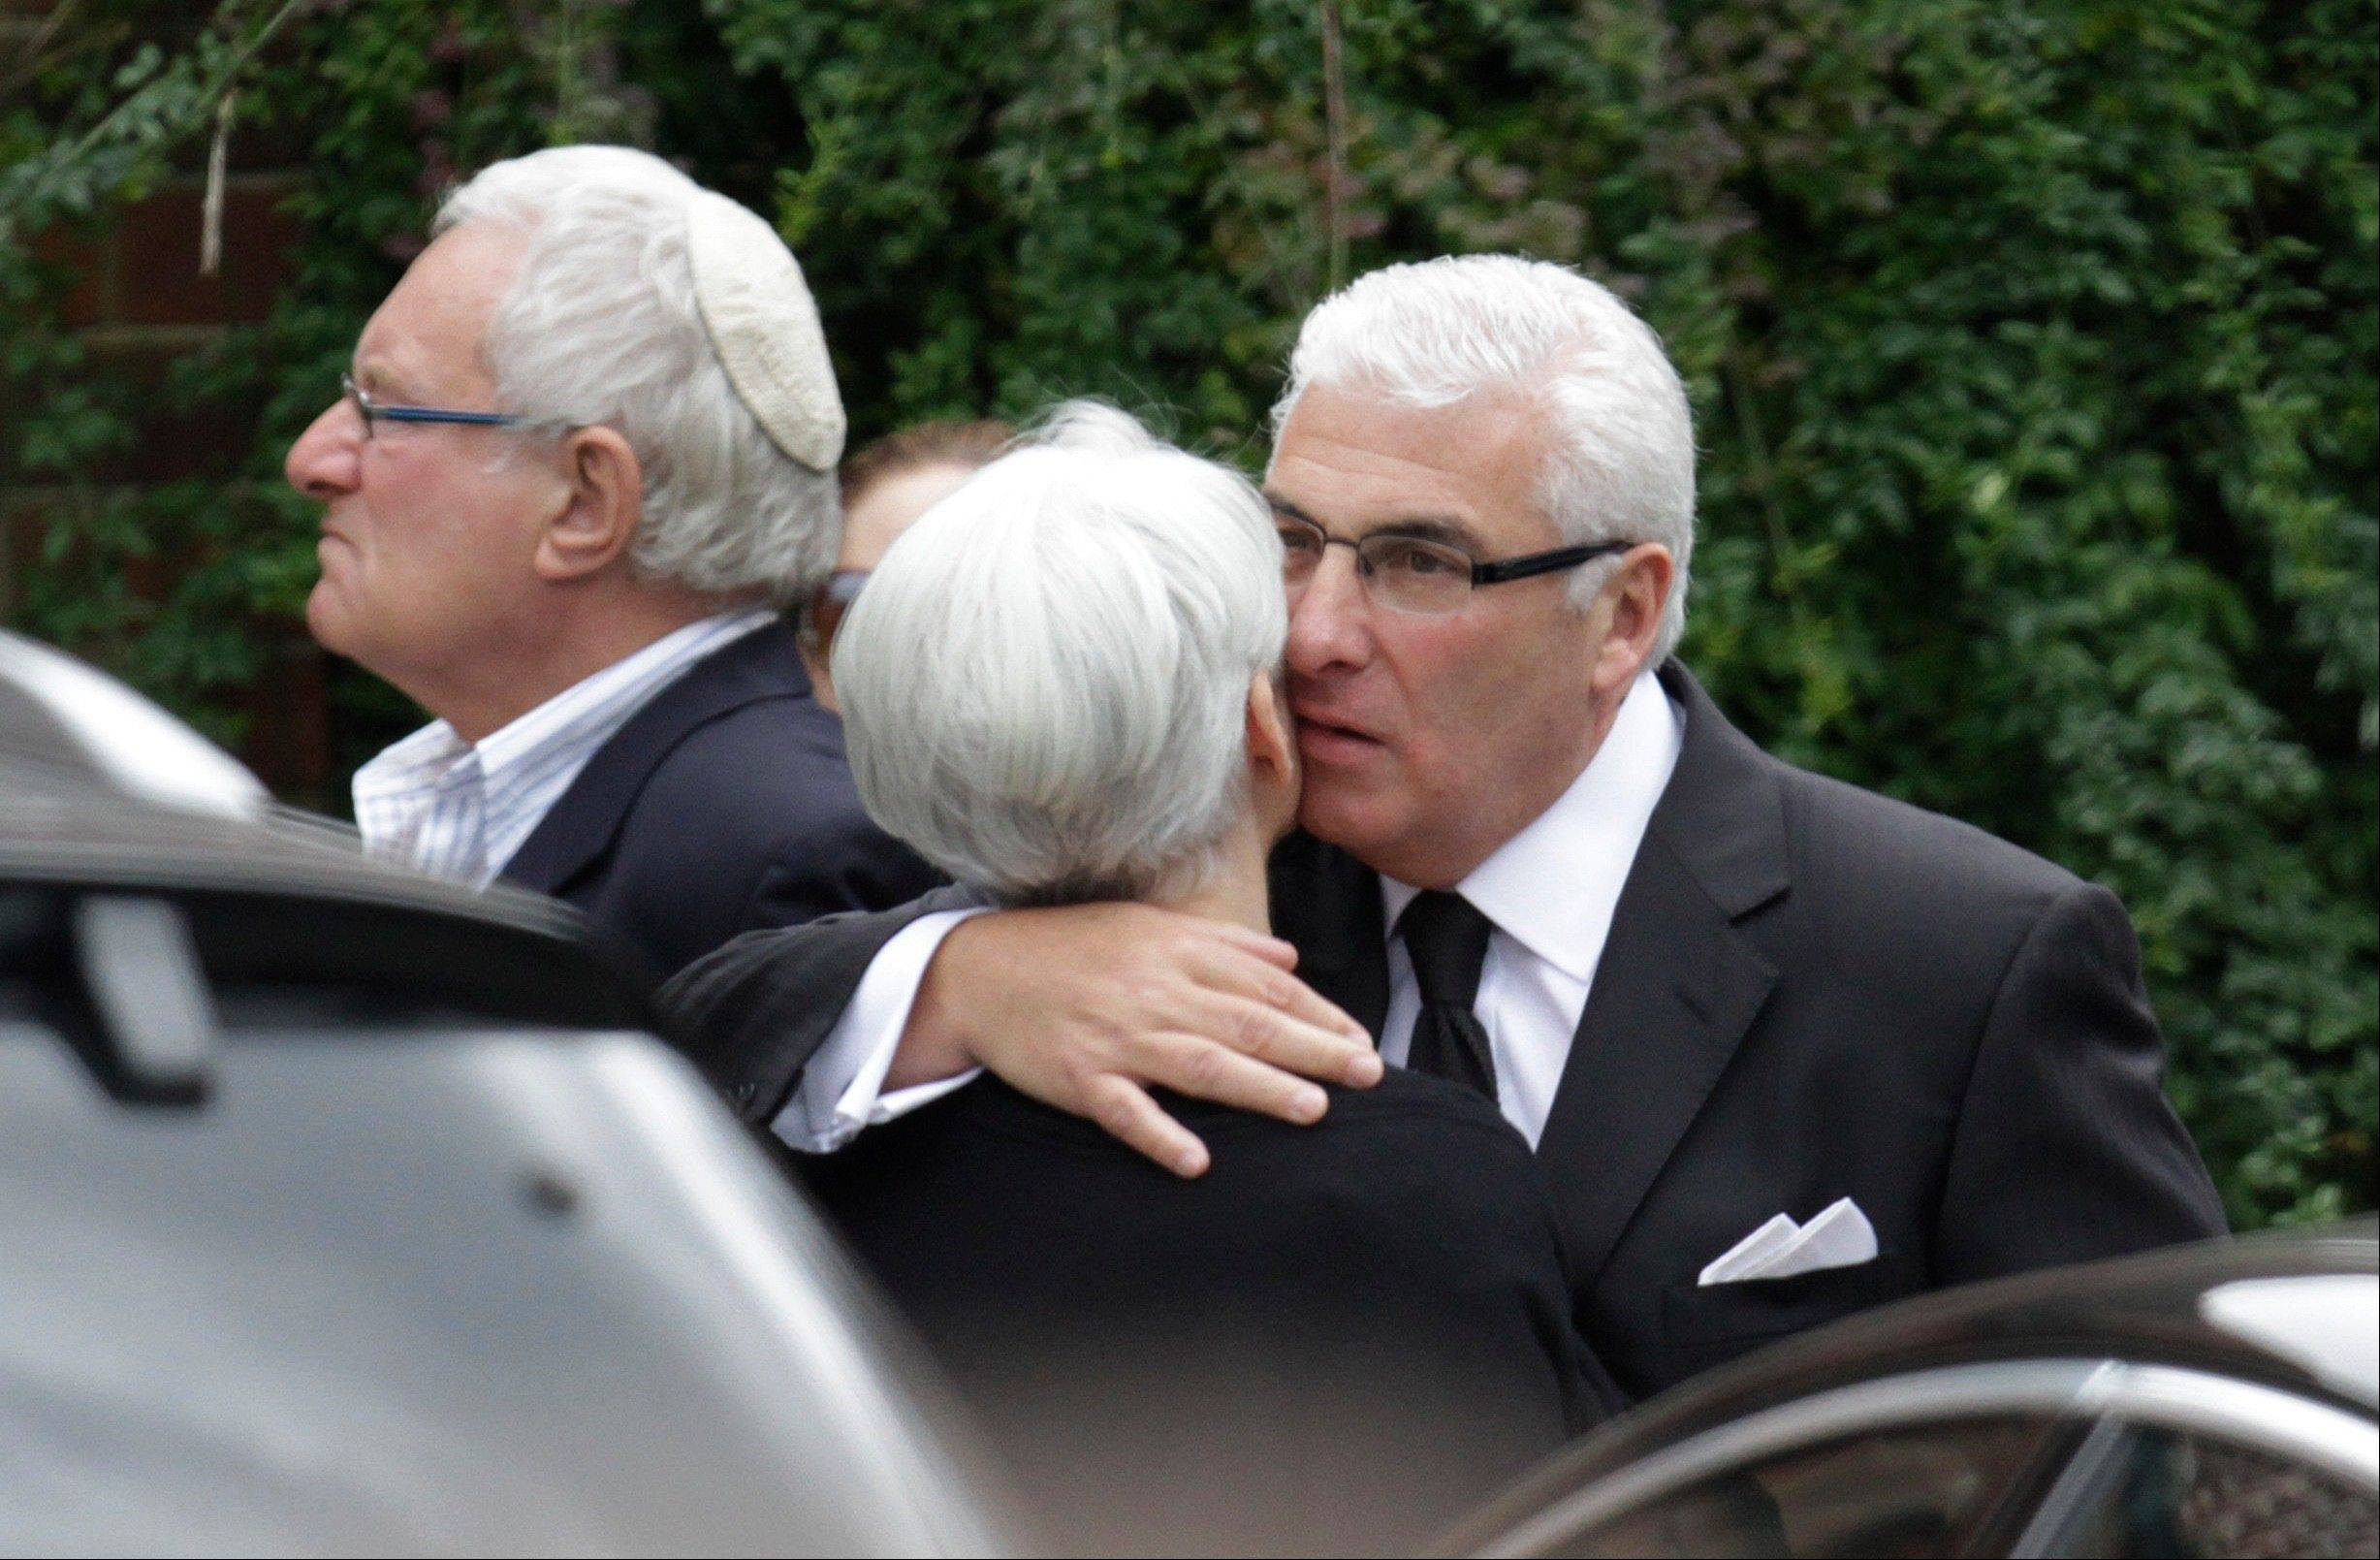 Mitch Winehouse, right, the father of British singer Amy Winehouse, consoles a mourner as he leaves the Golders Green Crematorium, north London, Tuesday, July 26, 2011. Amy Winehouse, the soul diva, who had battled alcohol and drug addiction, was found dead Saturday at her London home. She was 27.